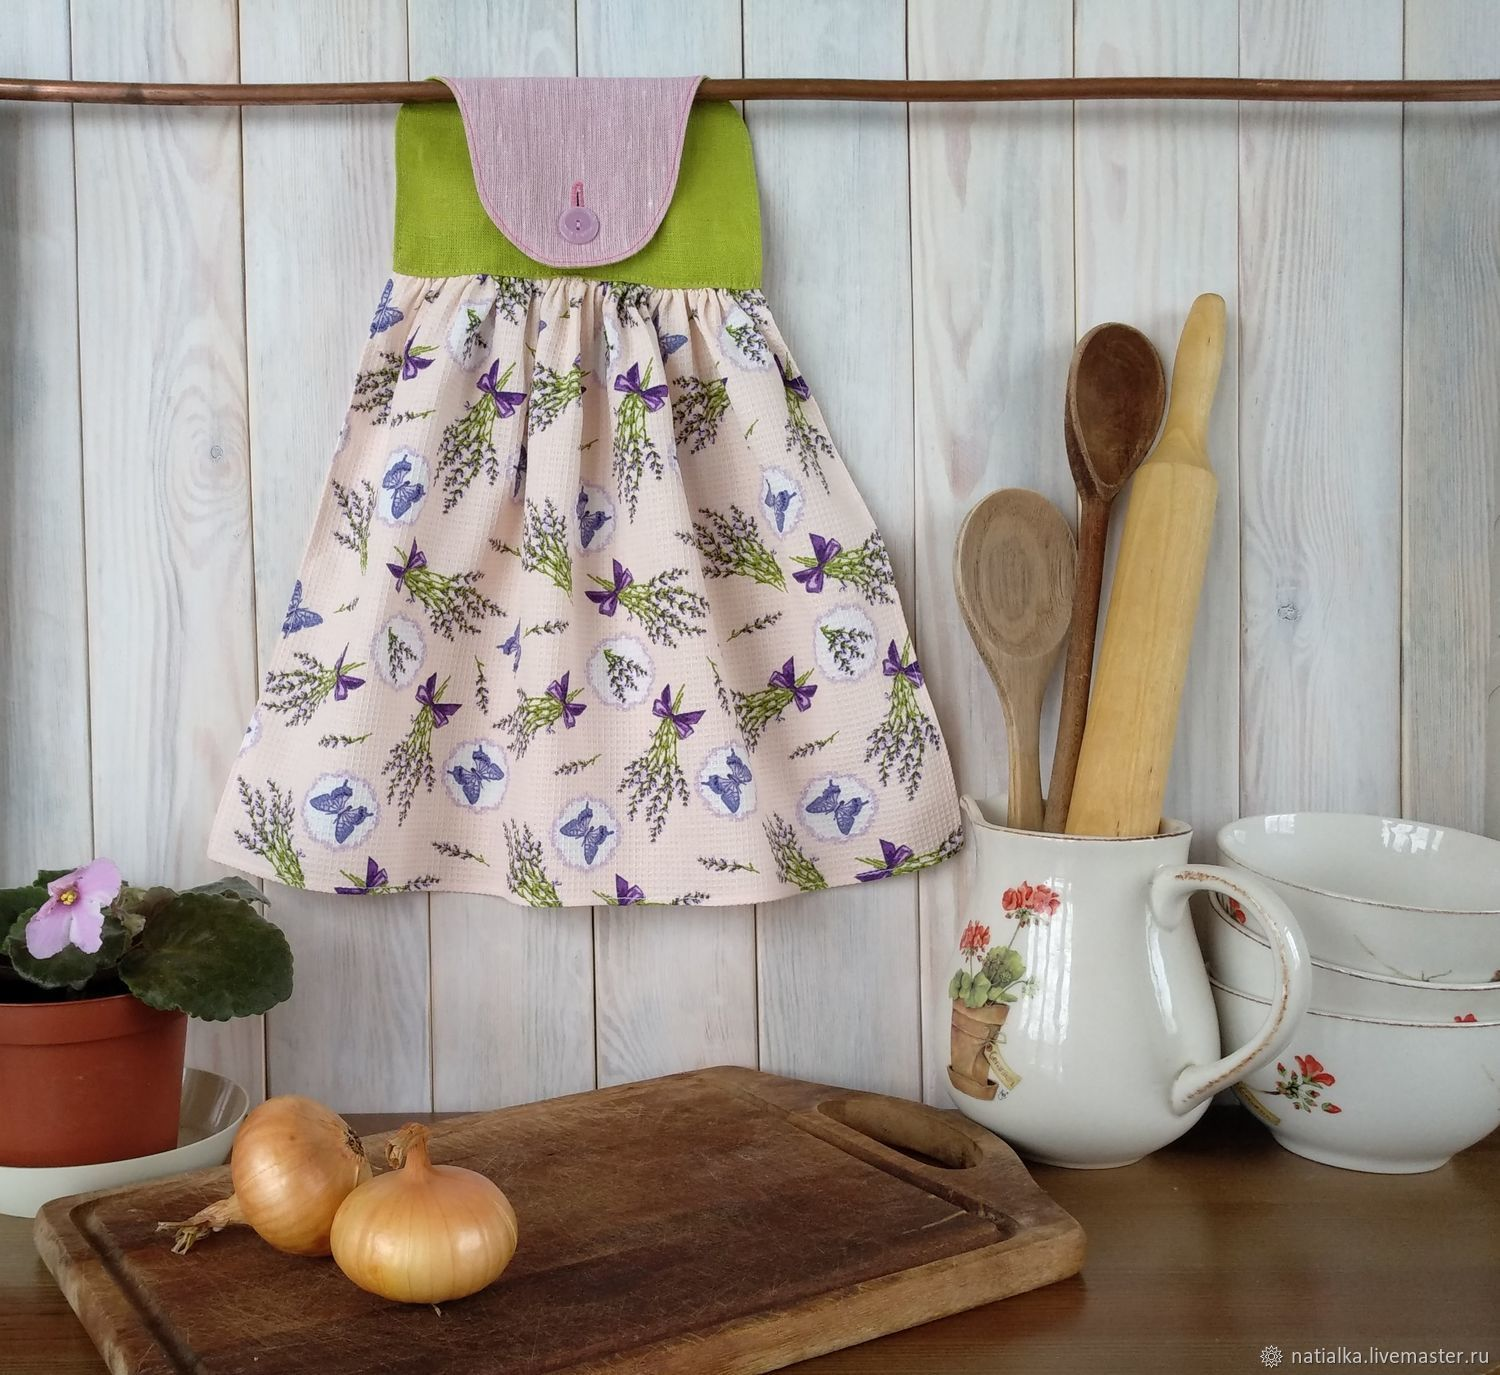 Kitchen handmade. Livemaster - handmade. Buy Kitchen towel with hanger, Summer dreams, Lavender, cotton and linen.Provence